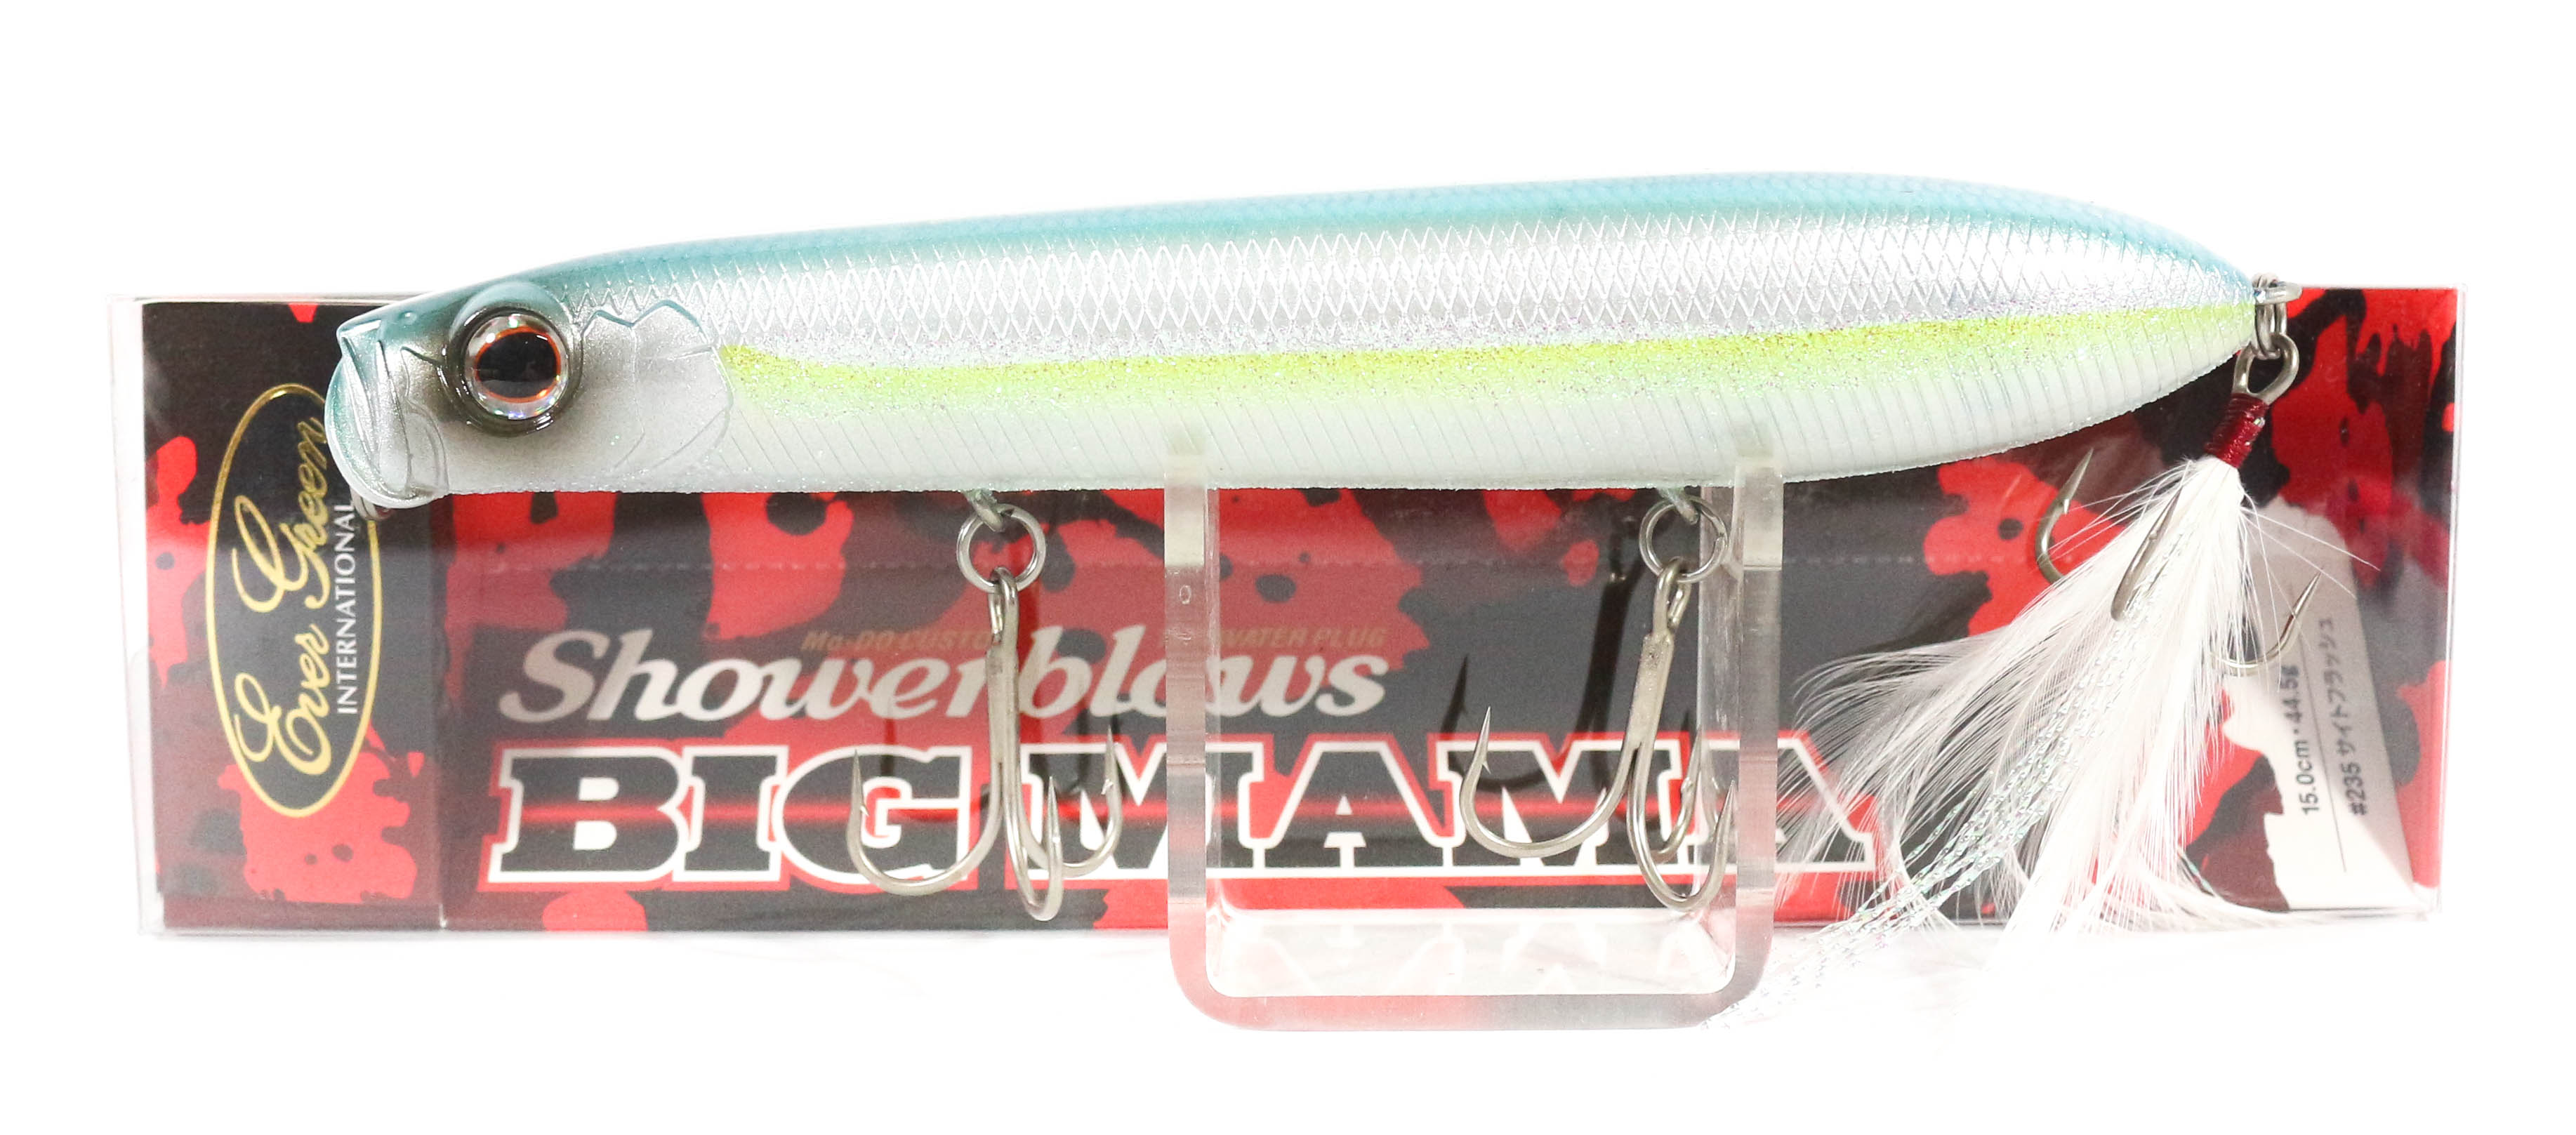 Evergreen Shower Blows Big Mama 150mm Pencil Floating Lure 239 (4335)